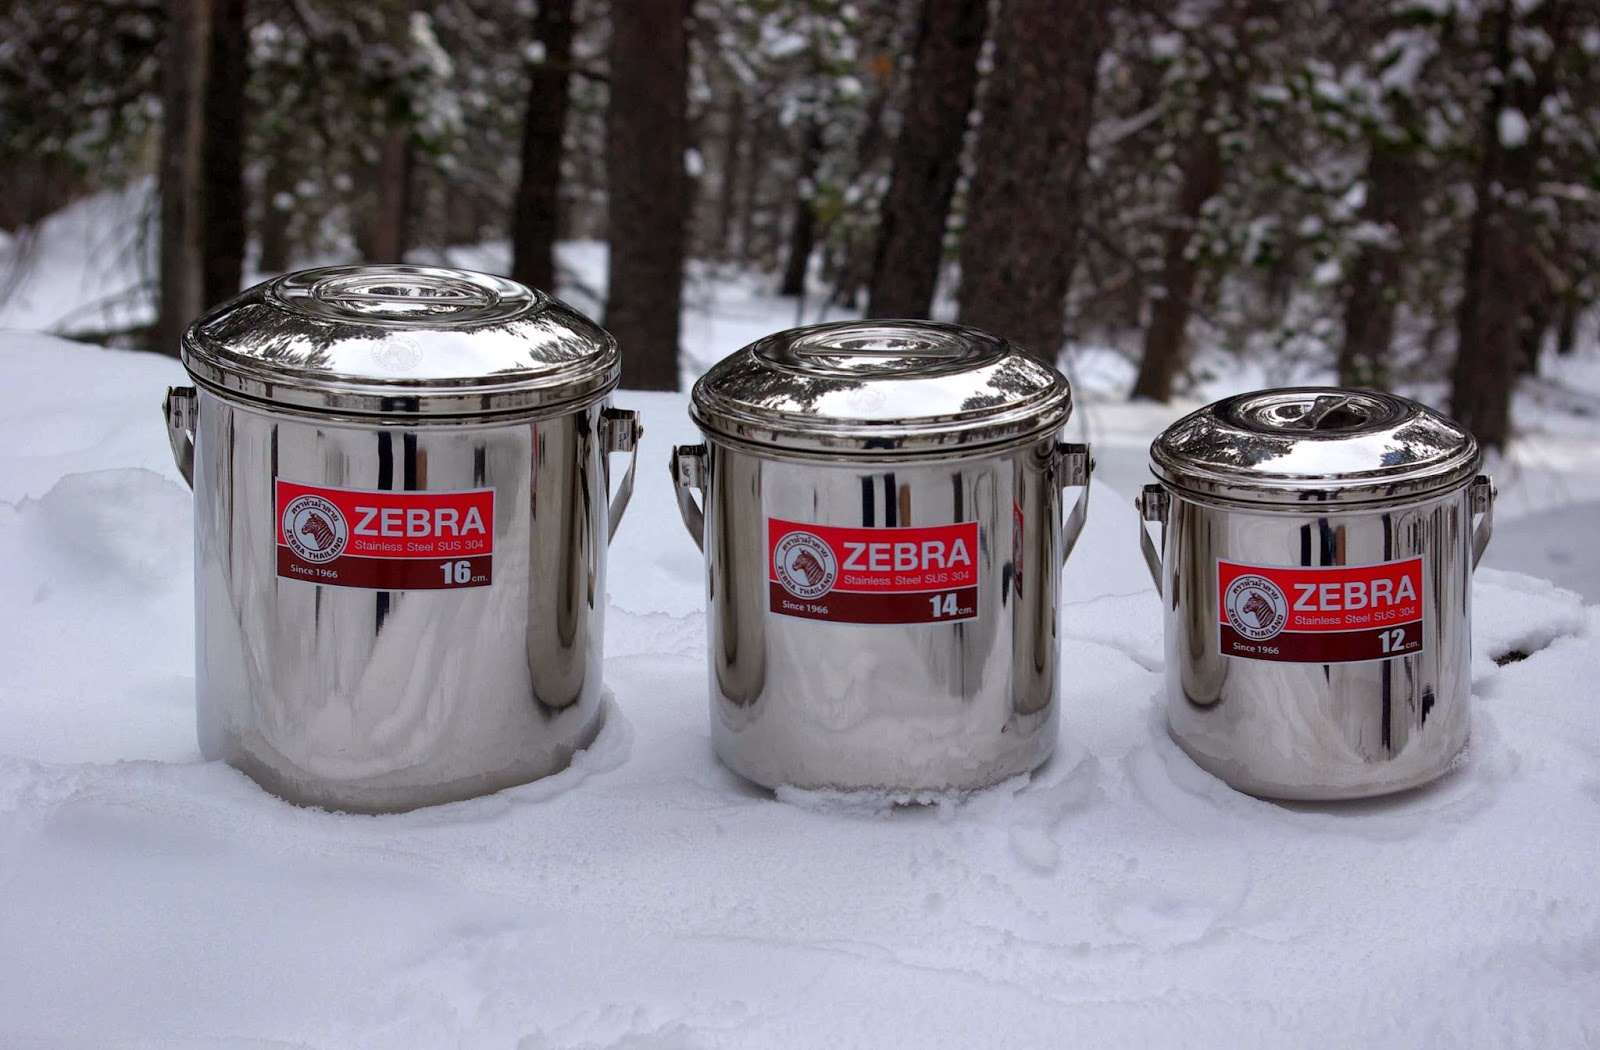 Rocky mountain bushcraft shot show 2014 first impression review - Gear Review Zebra Billy Pots